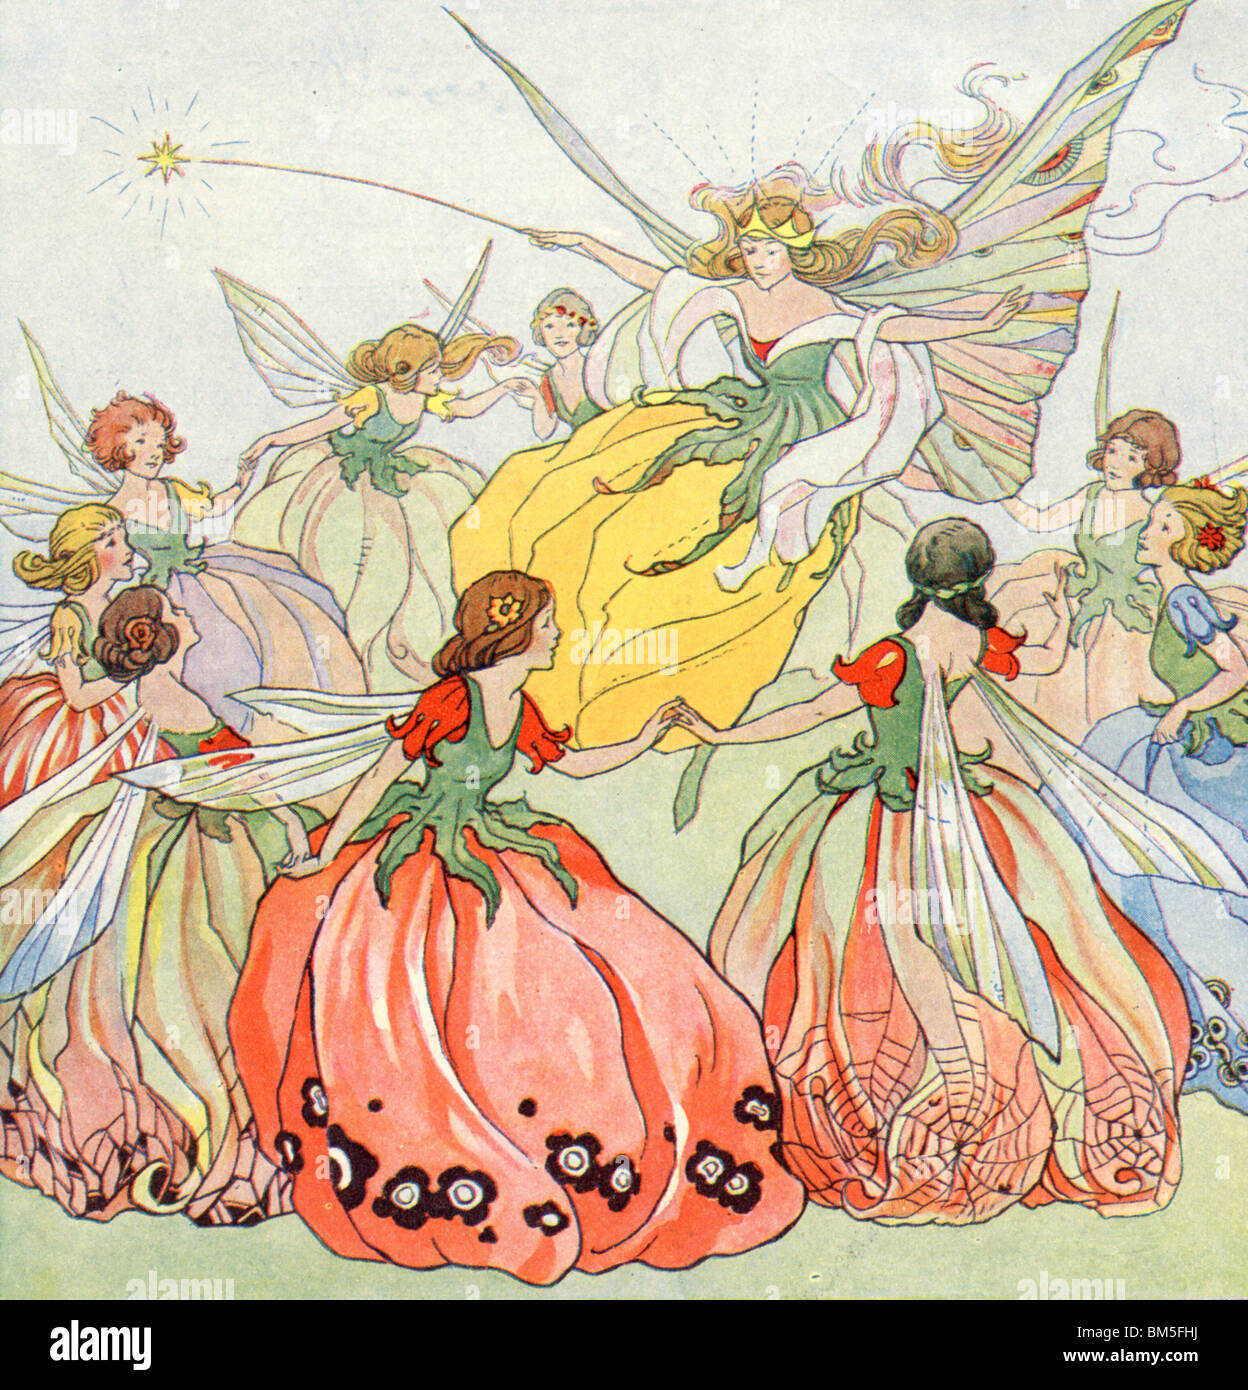 The Fairies in a flutter - Stock Image